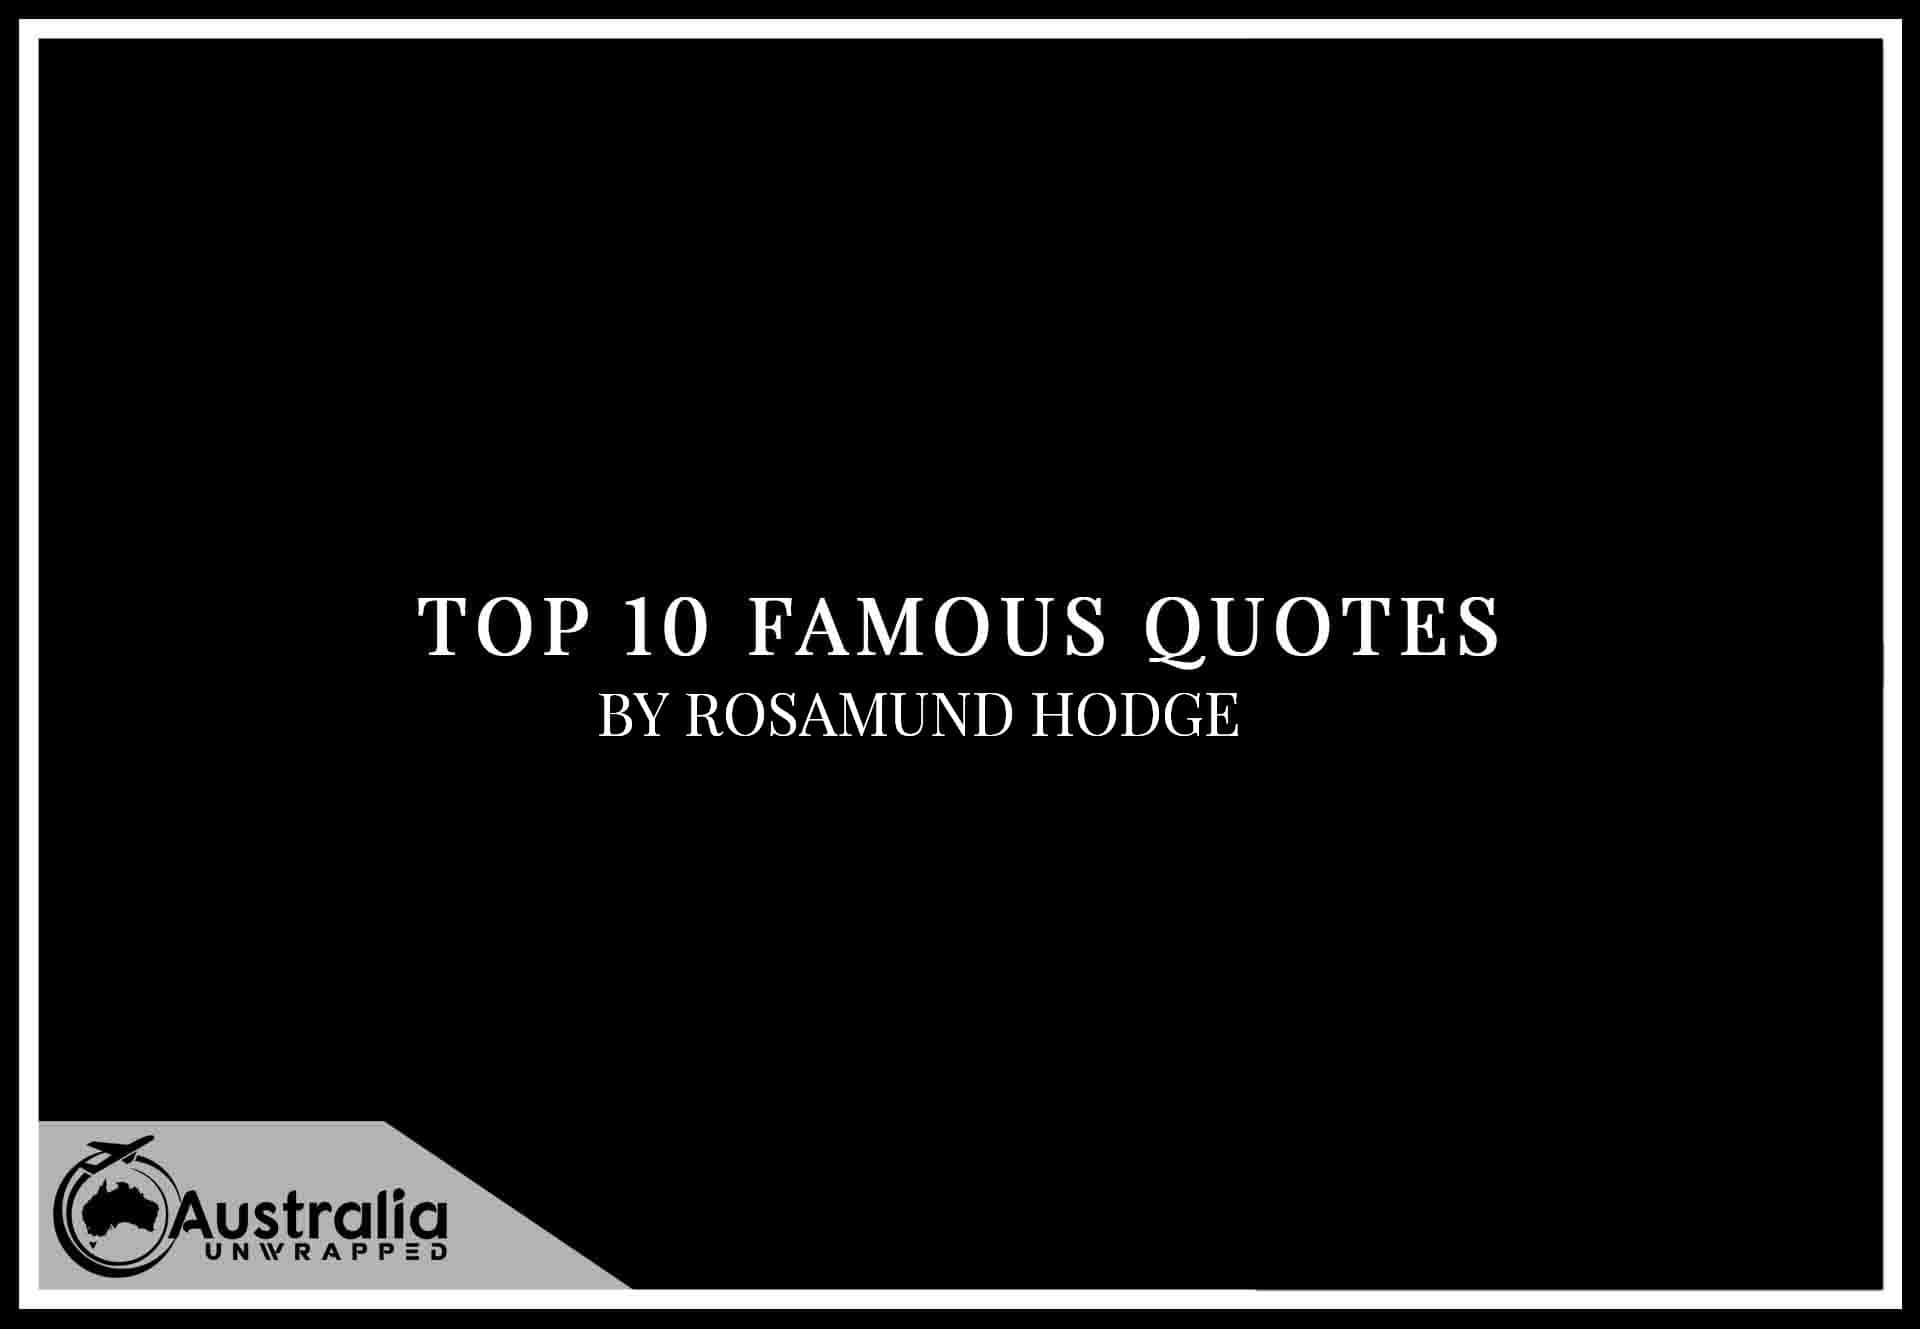 Top 10 Famous Quotes by Author Rosamund Hodge